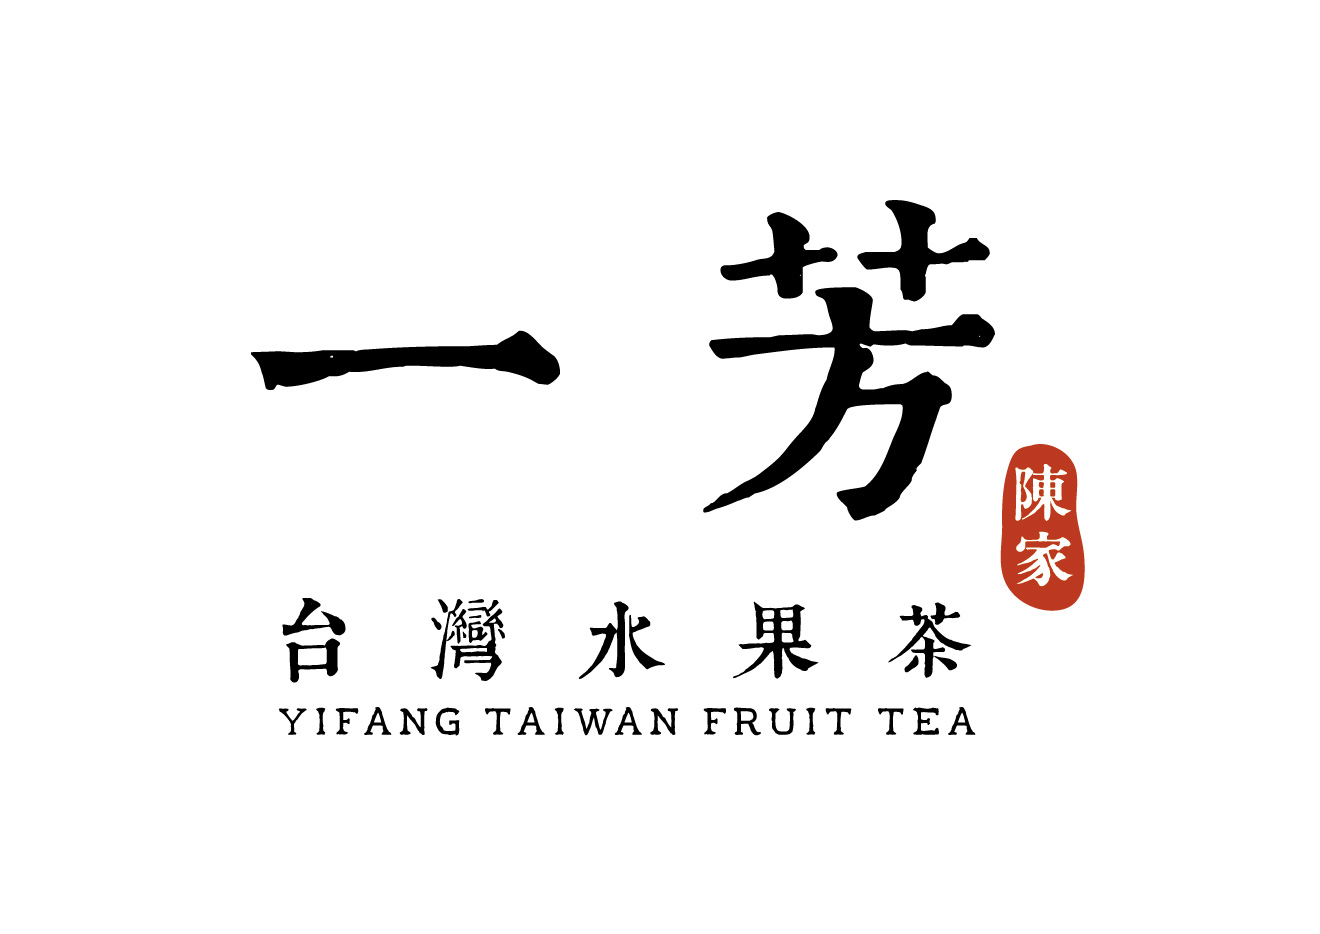 YIFANG TAIWAN FRUIT TEA